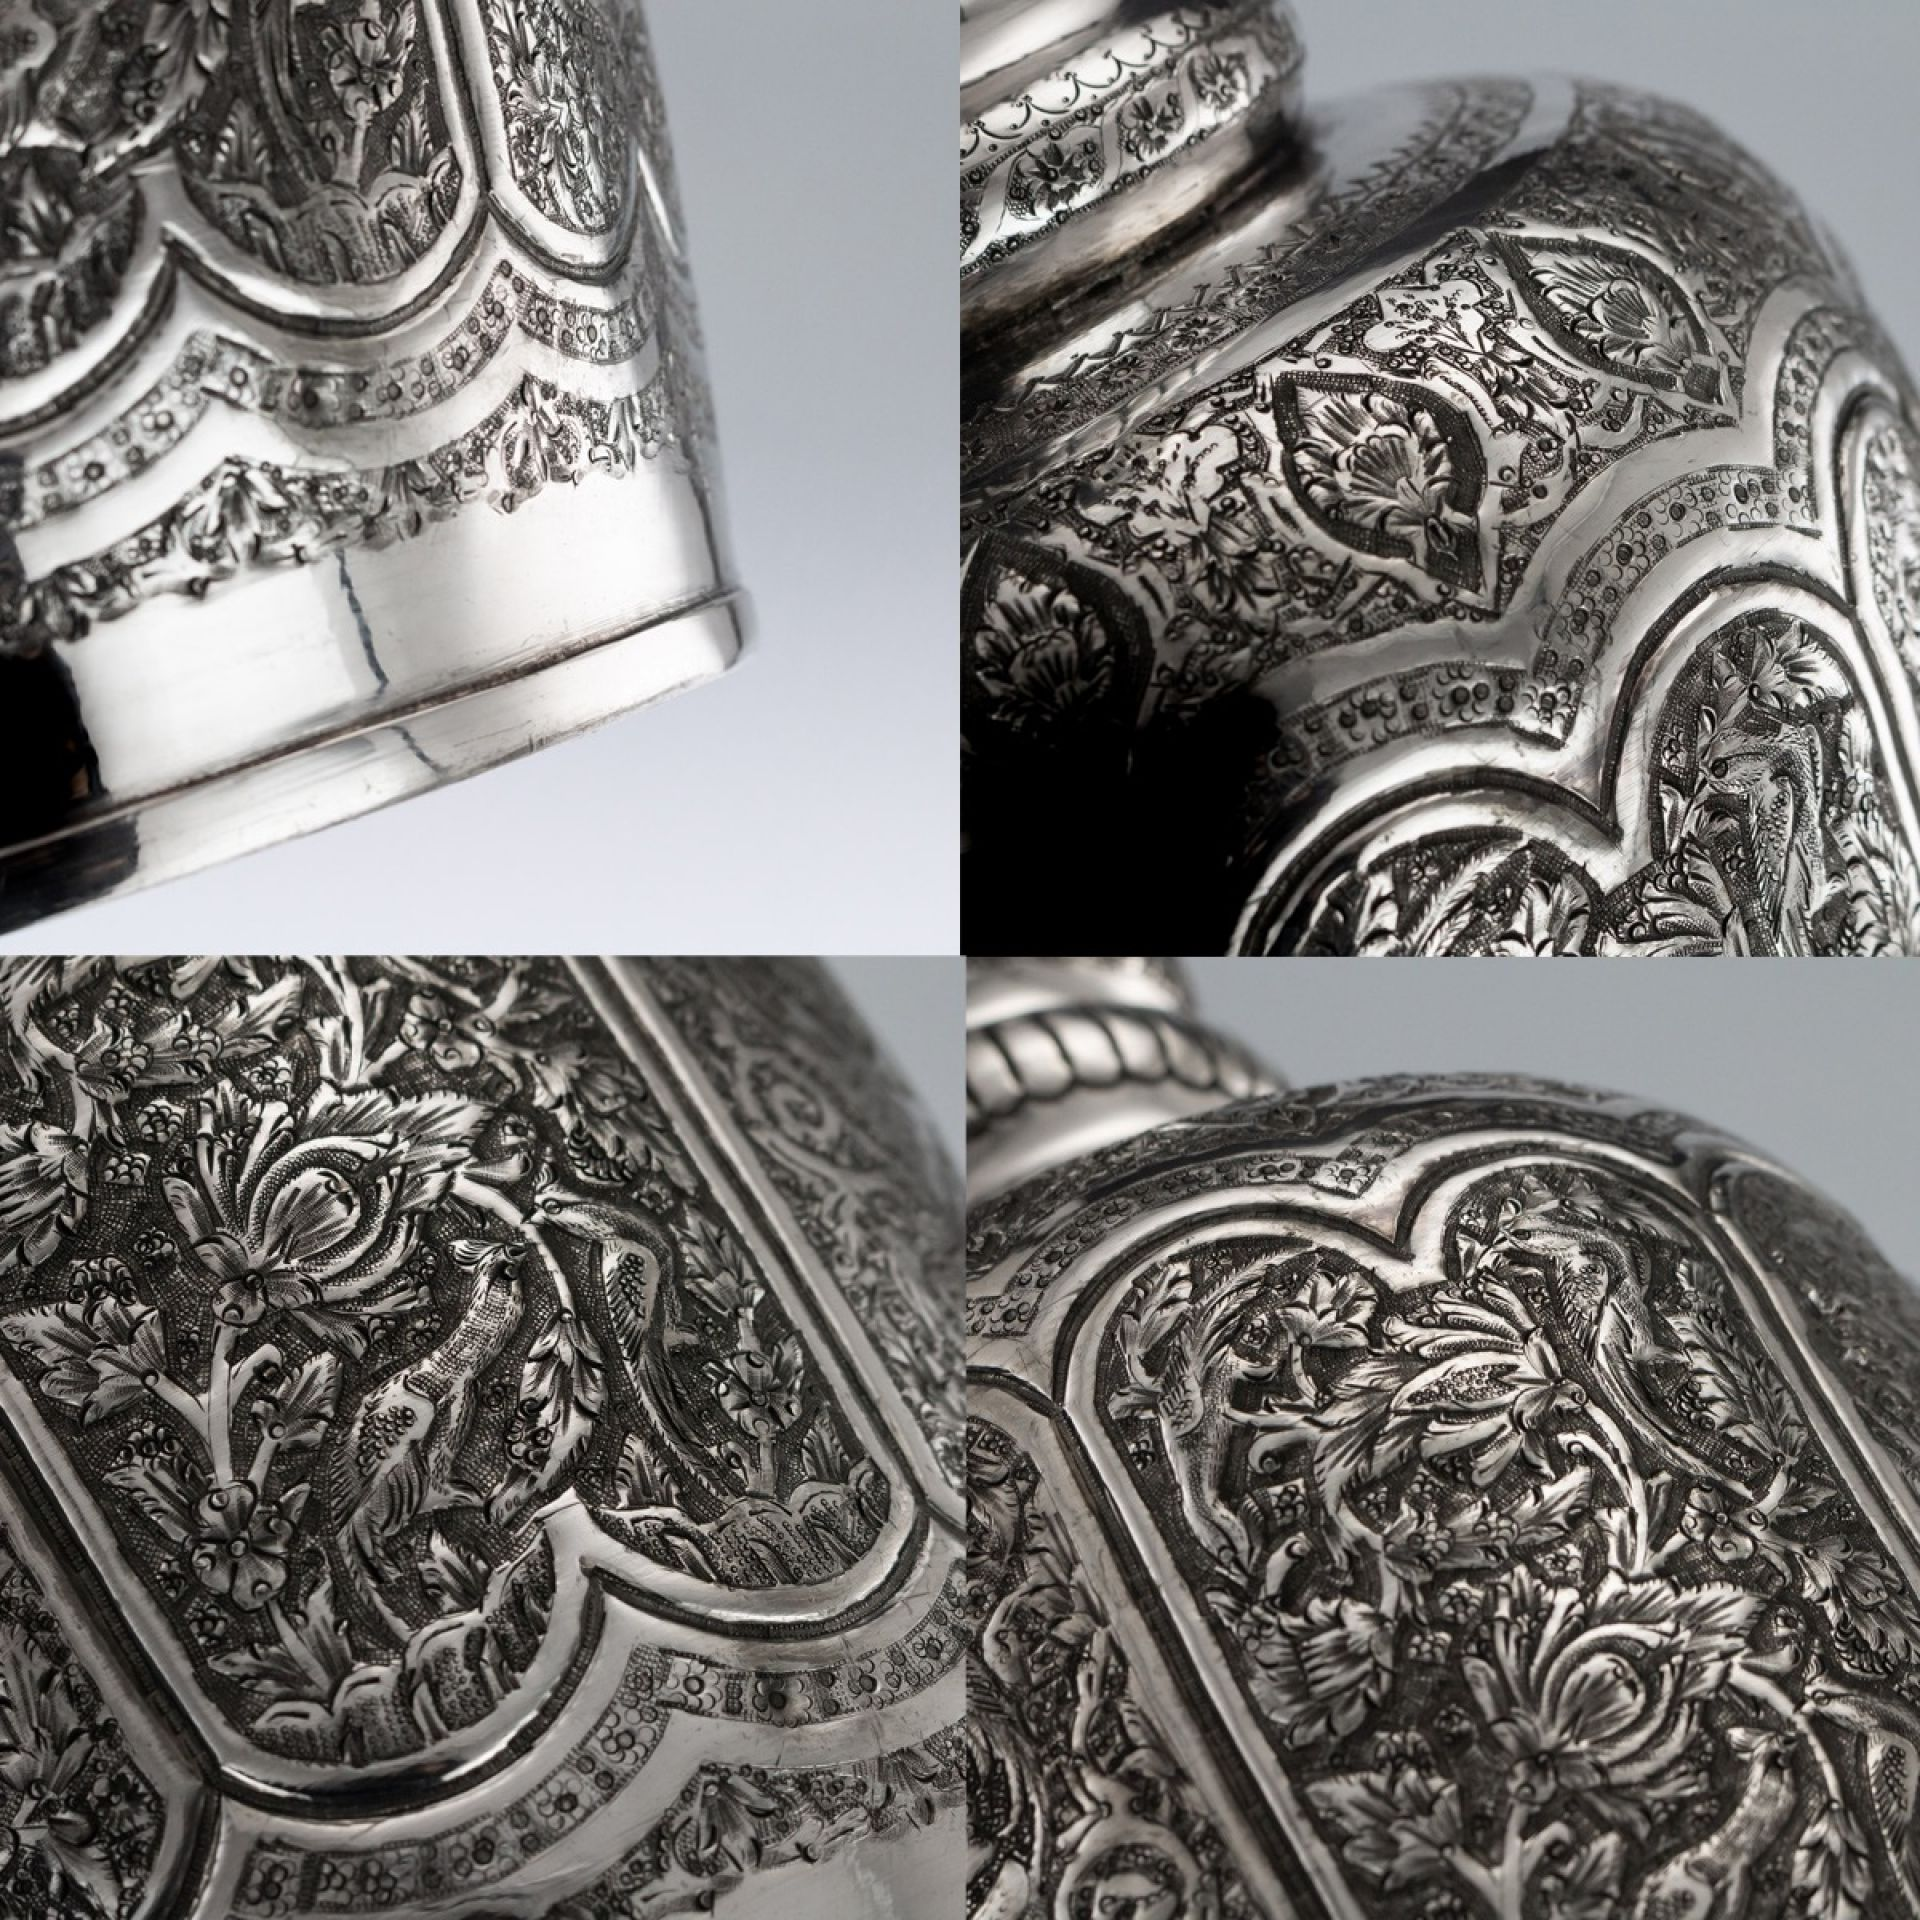 STUNNING 20thC PERSIAN MASSIVE SOLID SILVER REPOUSSE DECANTER c.1950